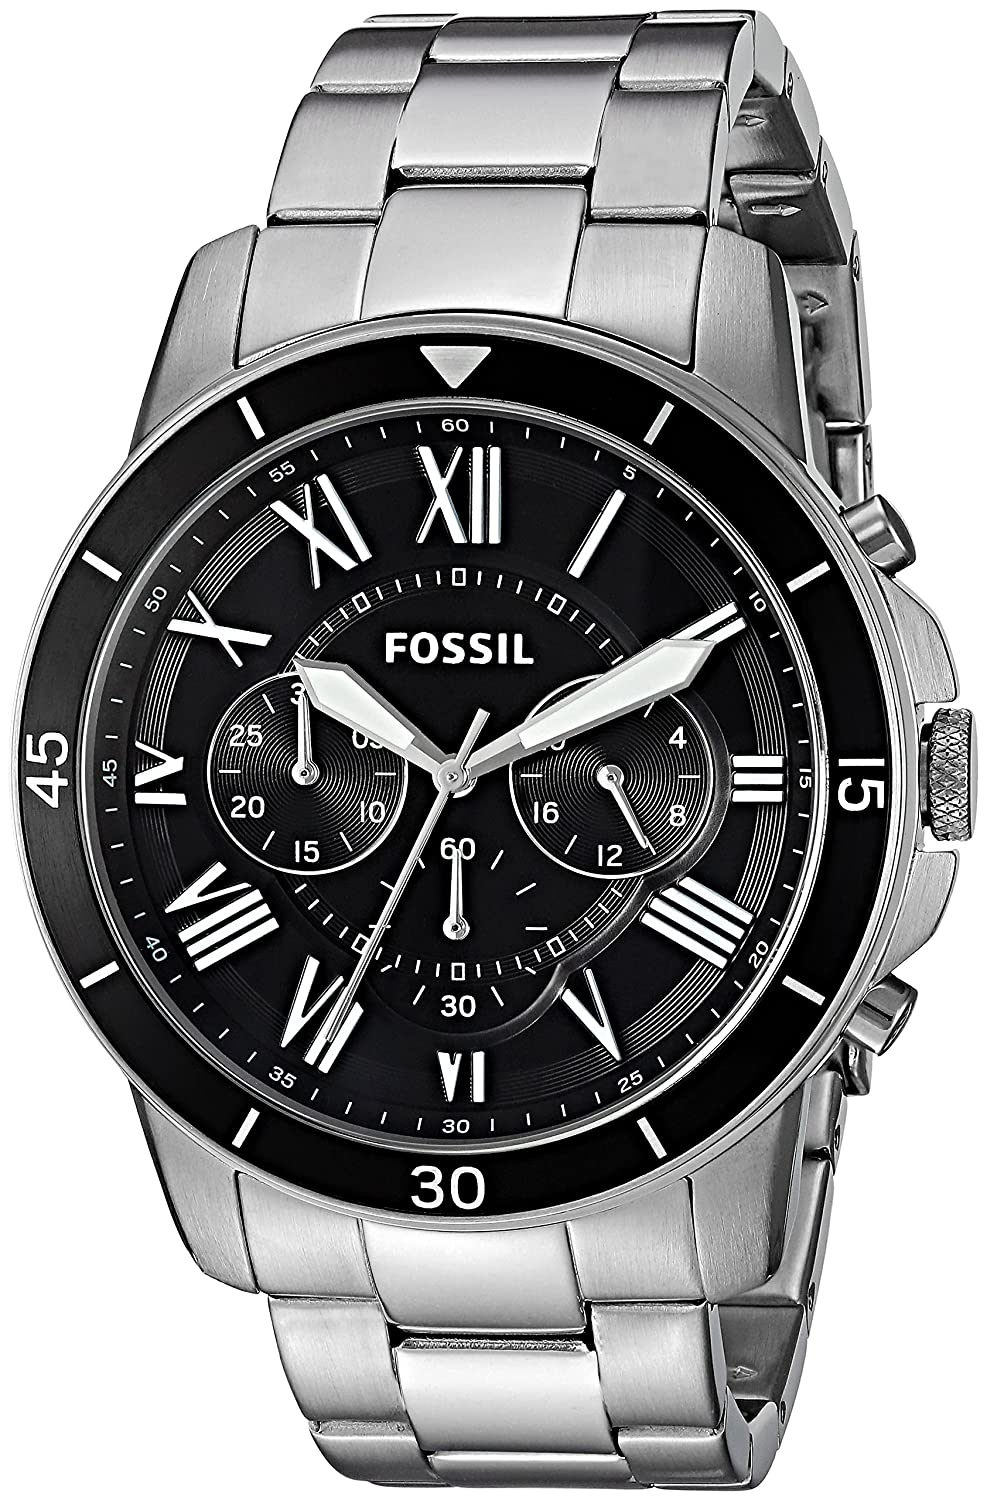 Buy Fossil Analog Black Dial Mens Watch Fs5236 Online At Low Fs4736 Prices In India